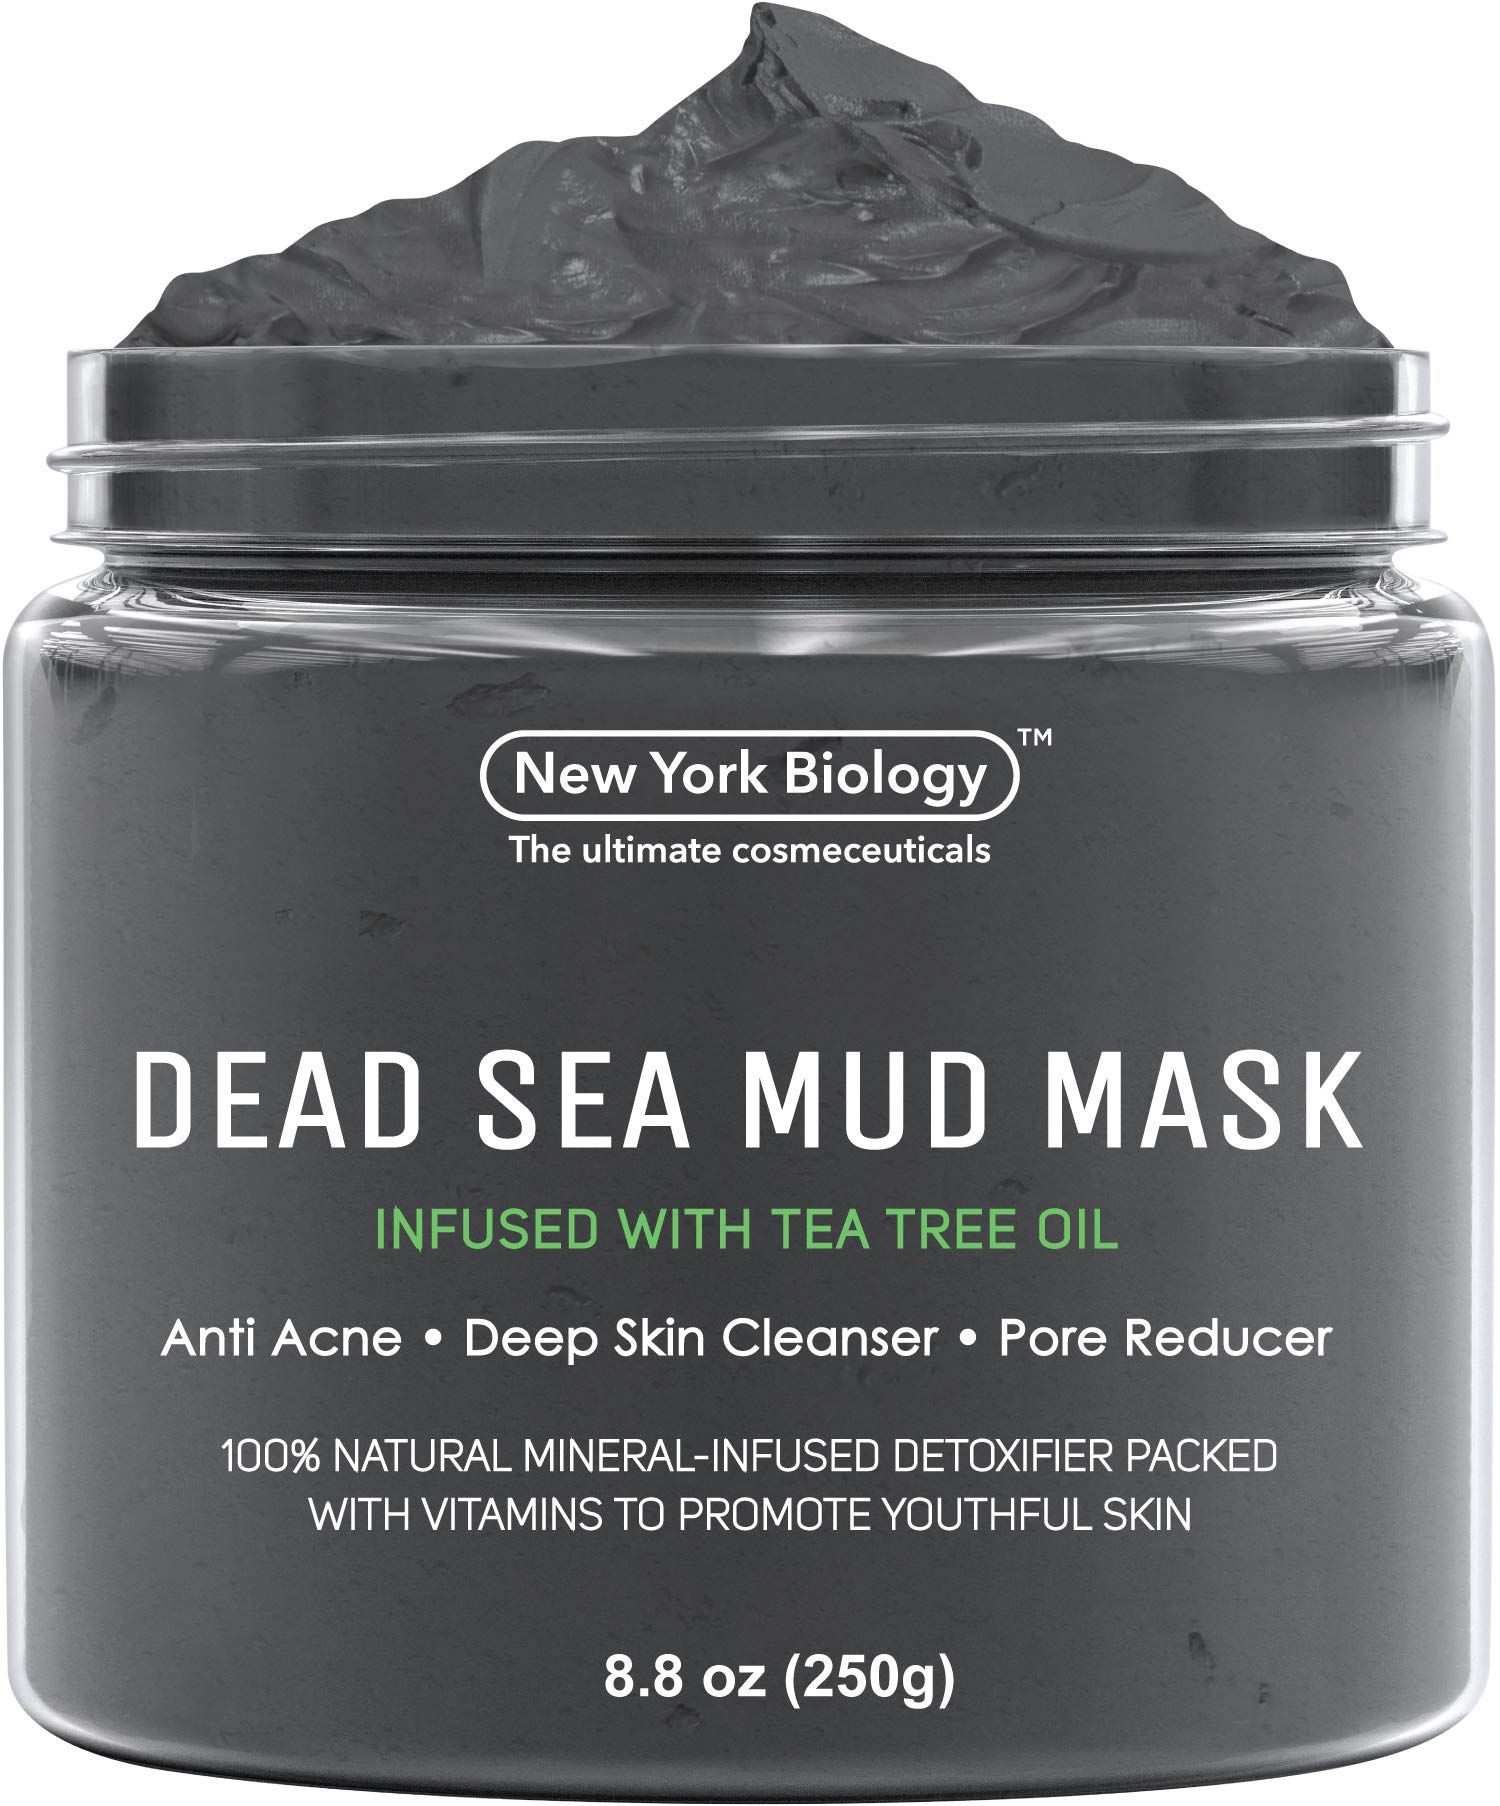 New York Biology Dead Sea Mud Mask Infused with Tea Tree - 100% Natural Spa Quality - Pore Reducer to Help with Acne, Blackheads and Oily Skin Tightens Skin for A Healthier Complexion - 8.8 oz by New York Biology